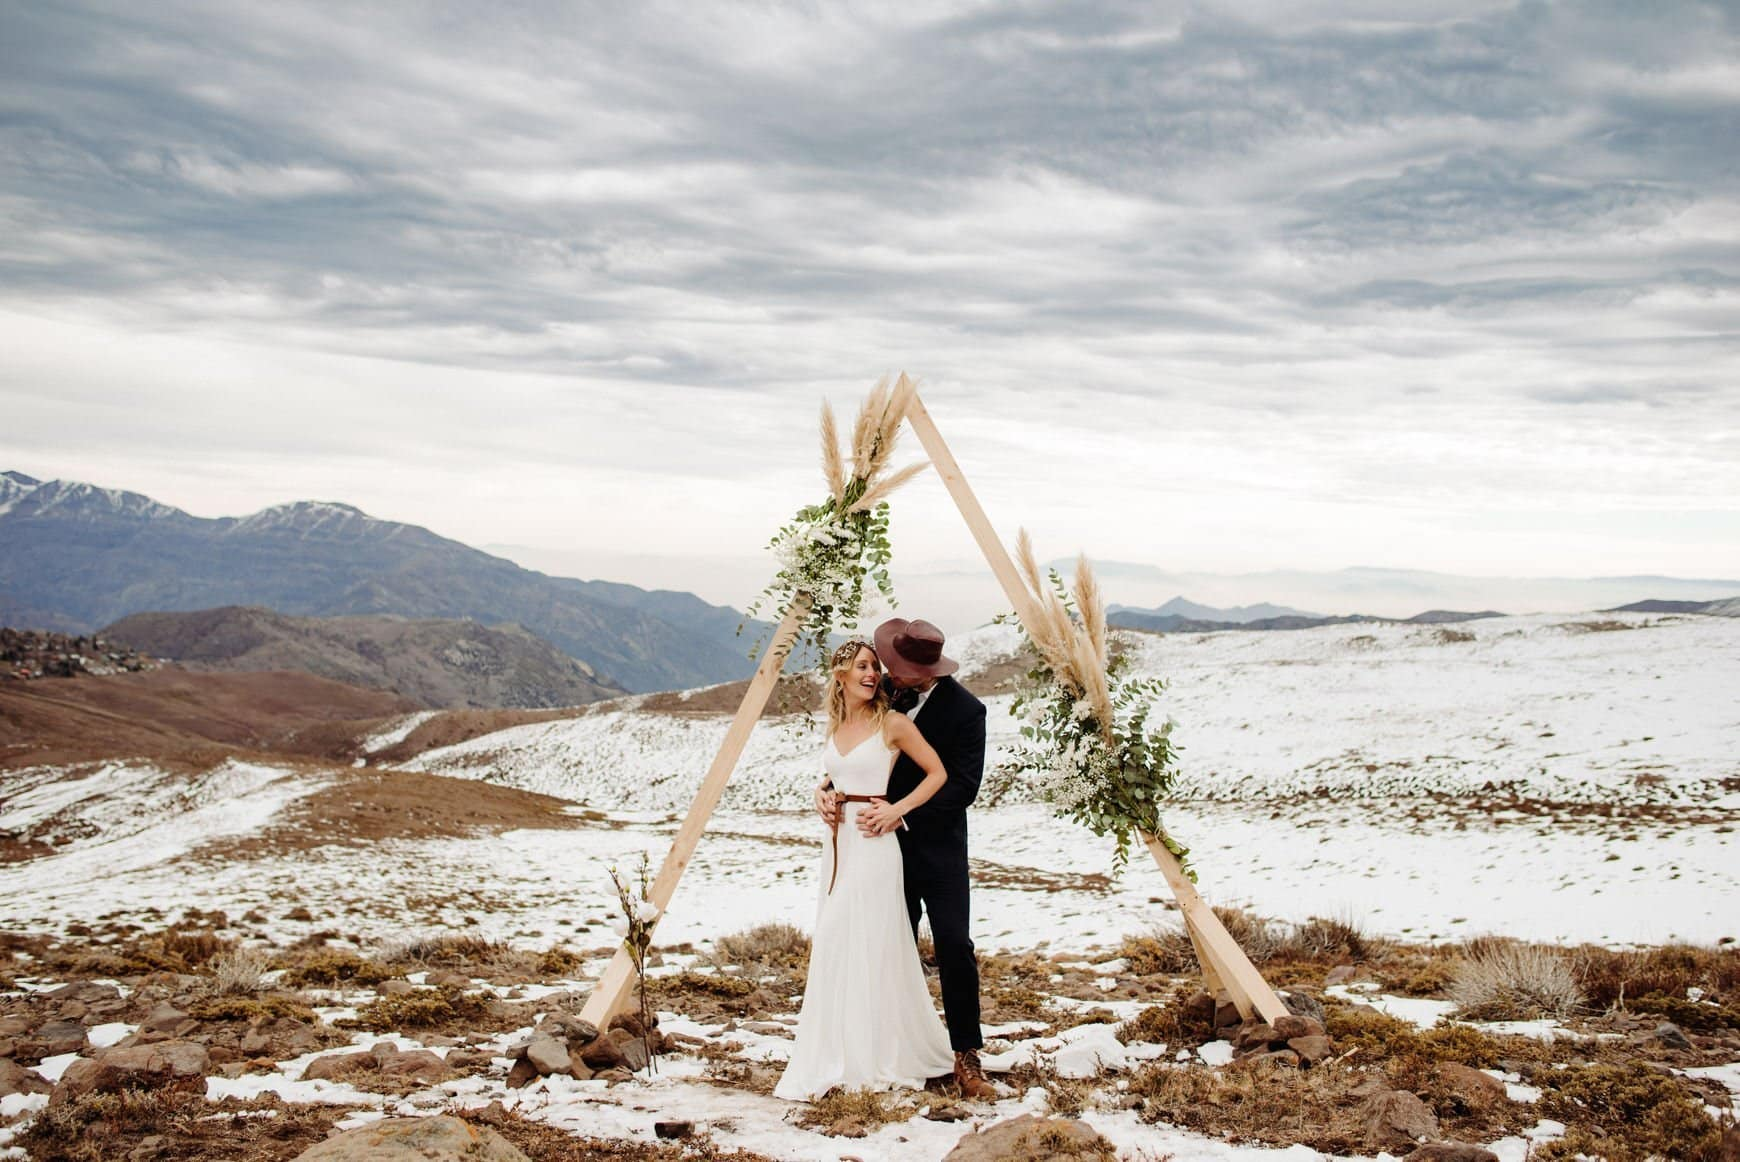 Elopement wedding Chile Los Andes Mountaing